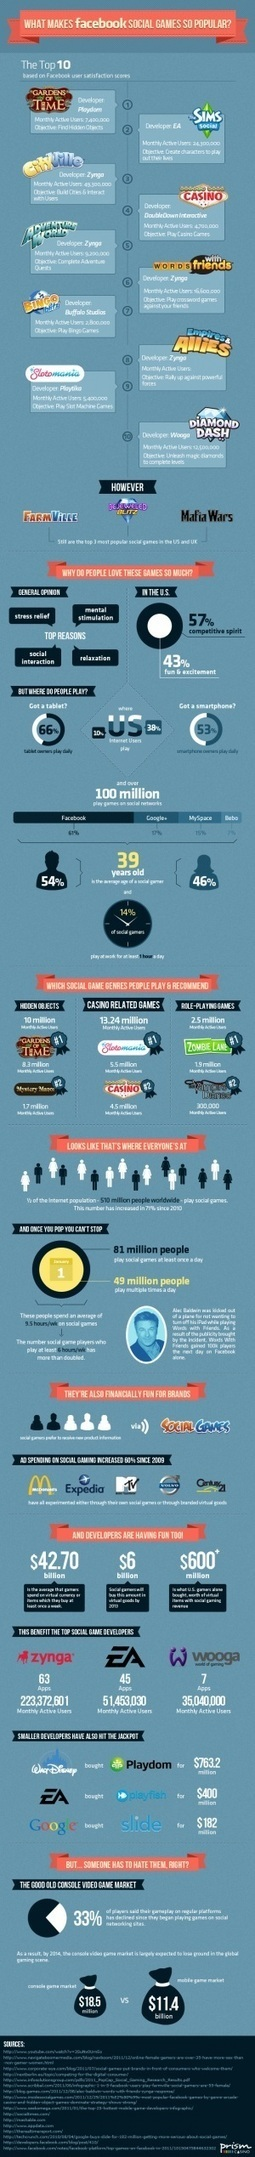 [INFOGRAPHIC] What Makes Facebook Social Games So Popular? | INFOGRAPHICS | Scoop.it